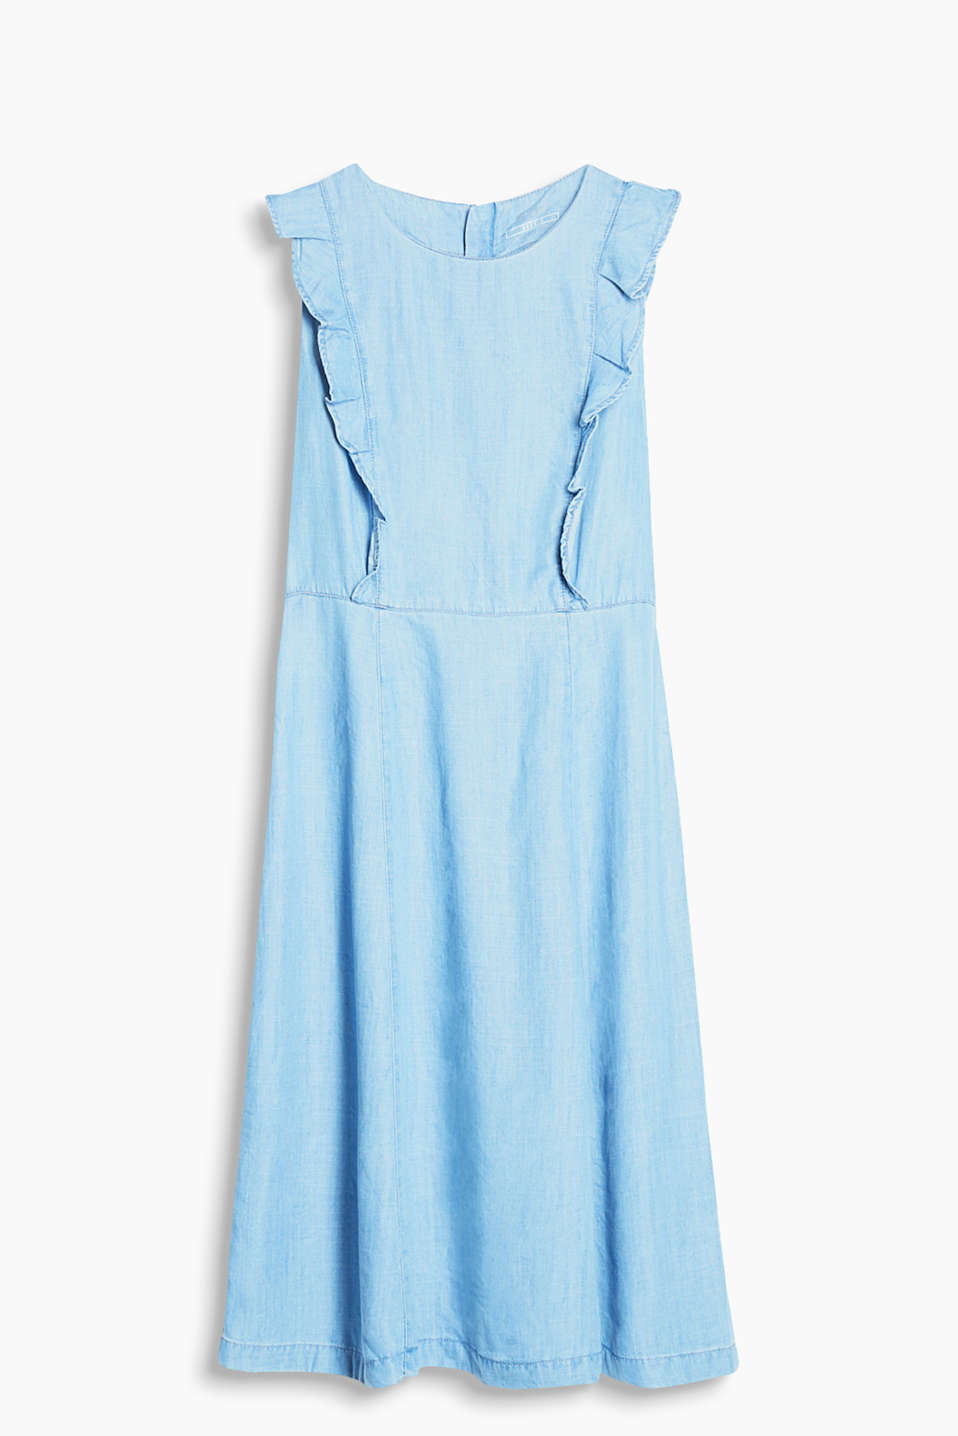 Flowing dress in a denim look with playful frills